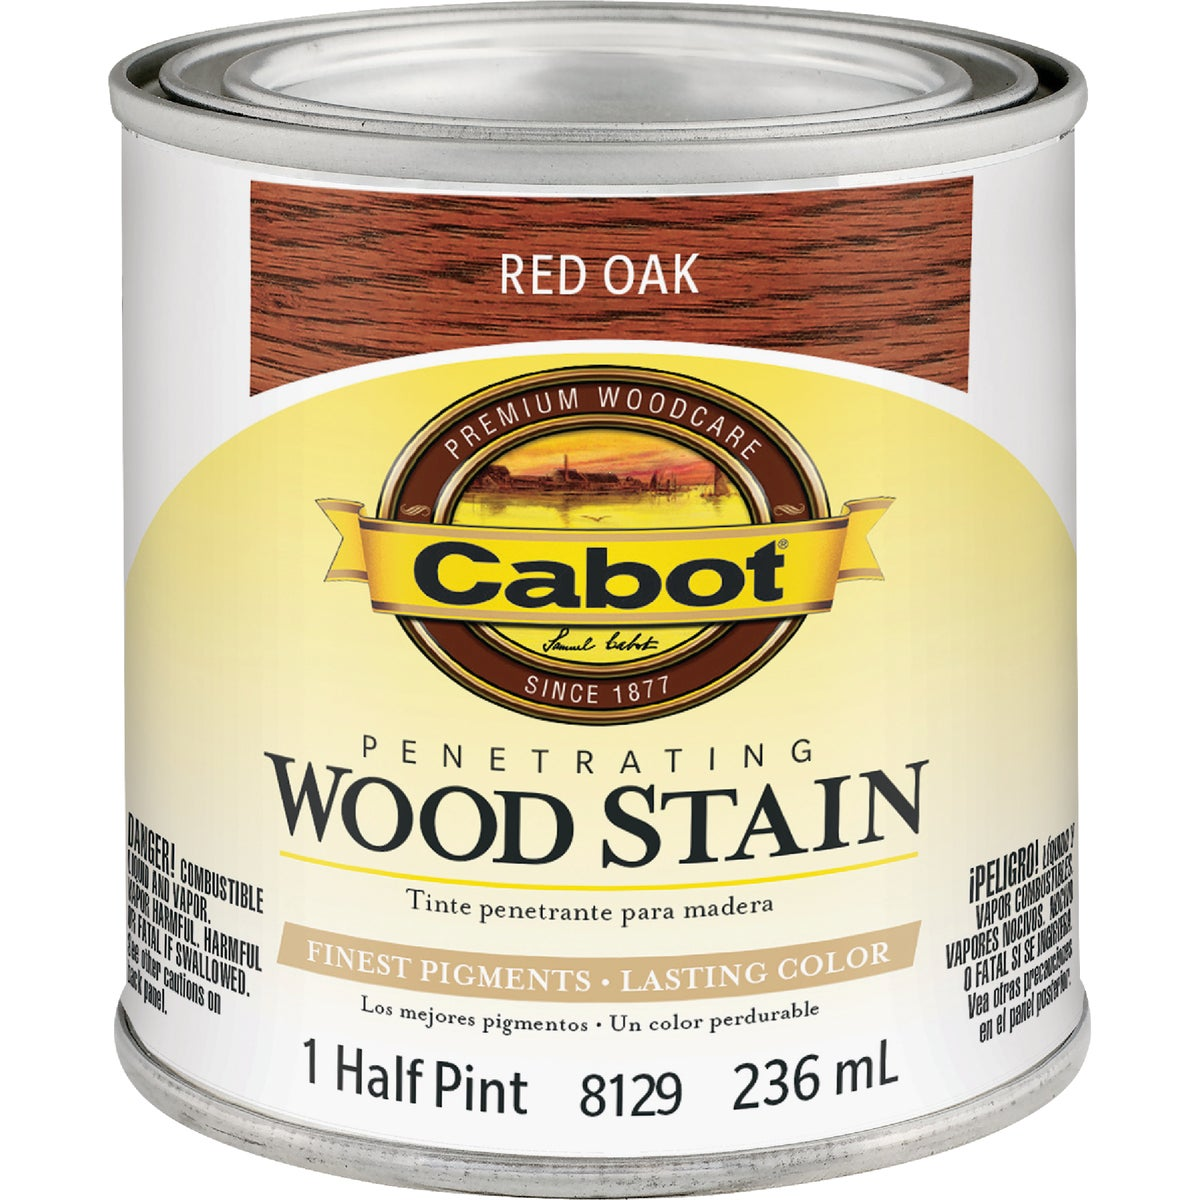 INT RED OAK WOOD STAIN - 144.0008129.003 by Valspar Corp